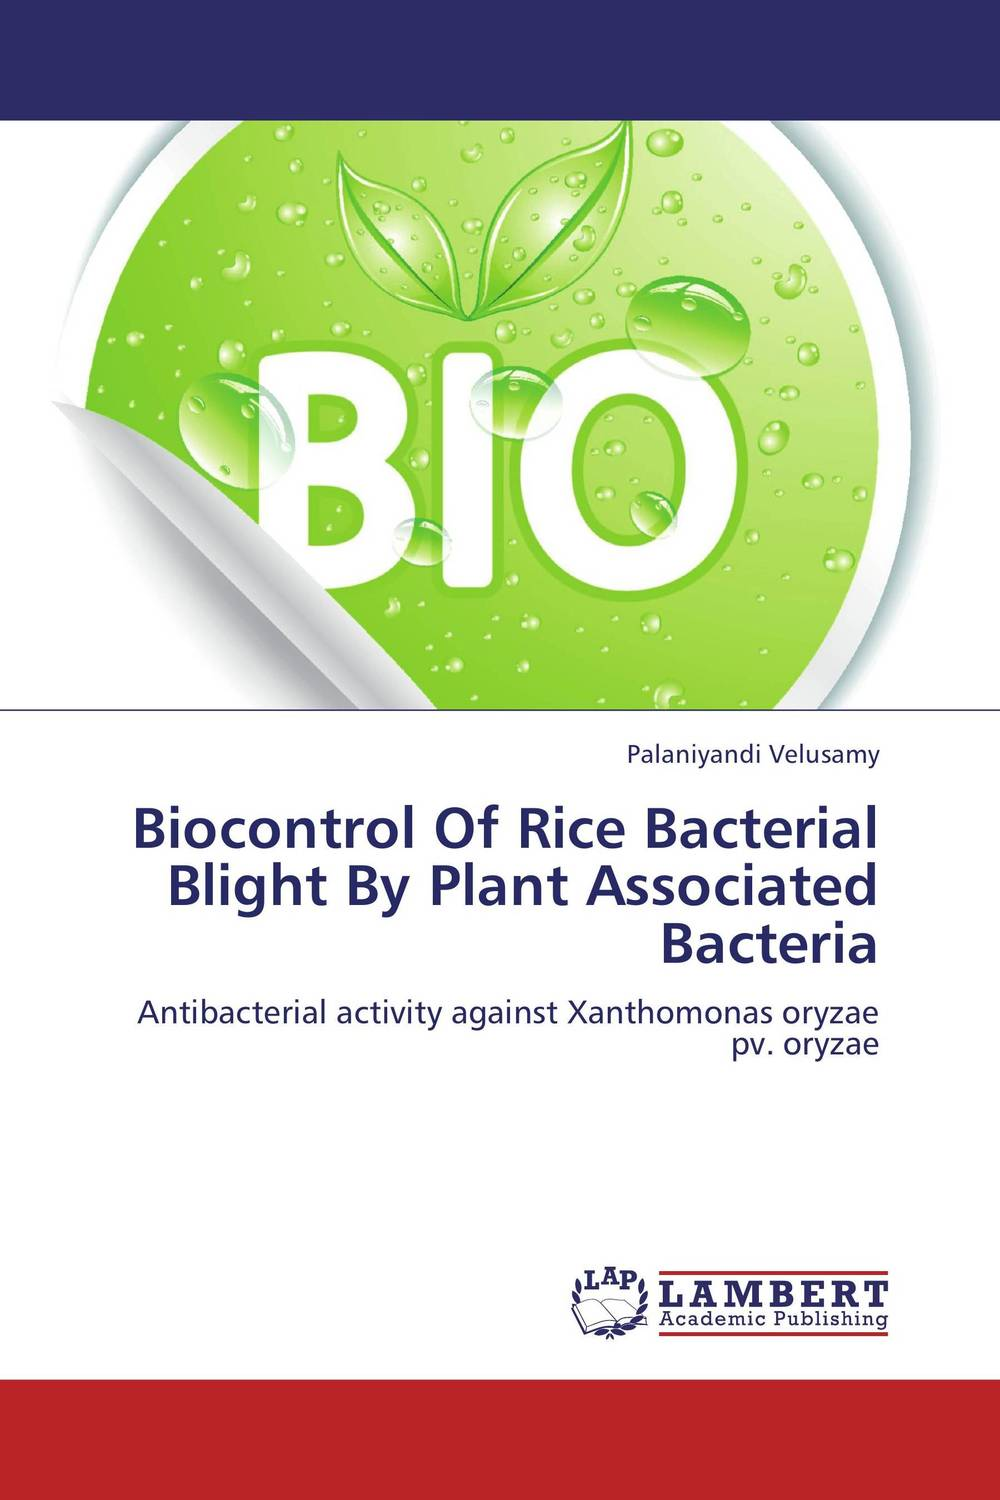 Biocontrol Of Rice Bacterial Blight By Plant Associated Bacteria improved expression of bacterial chia in plant by codon optimisation